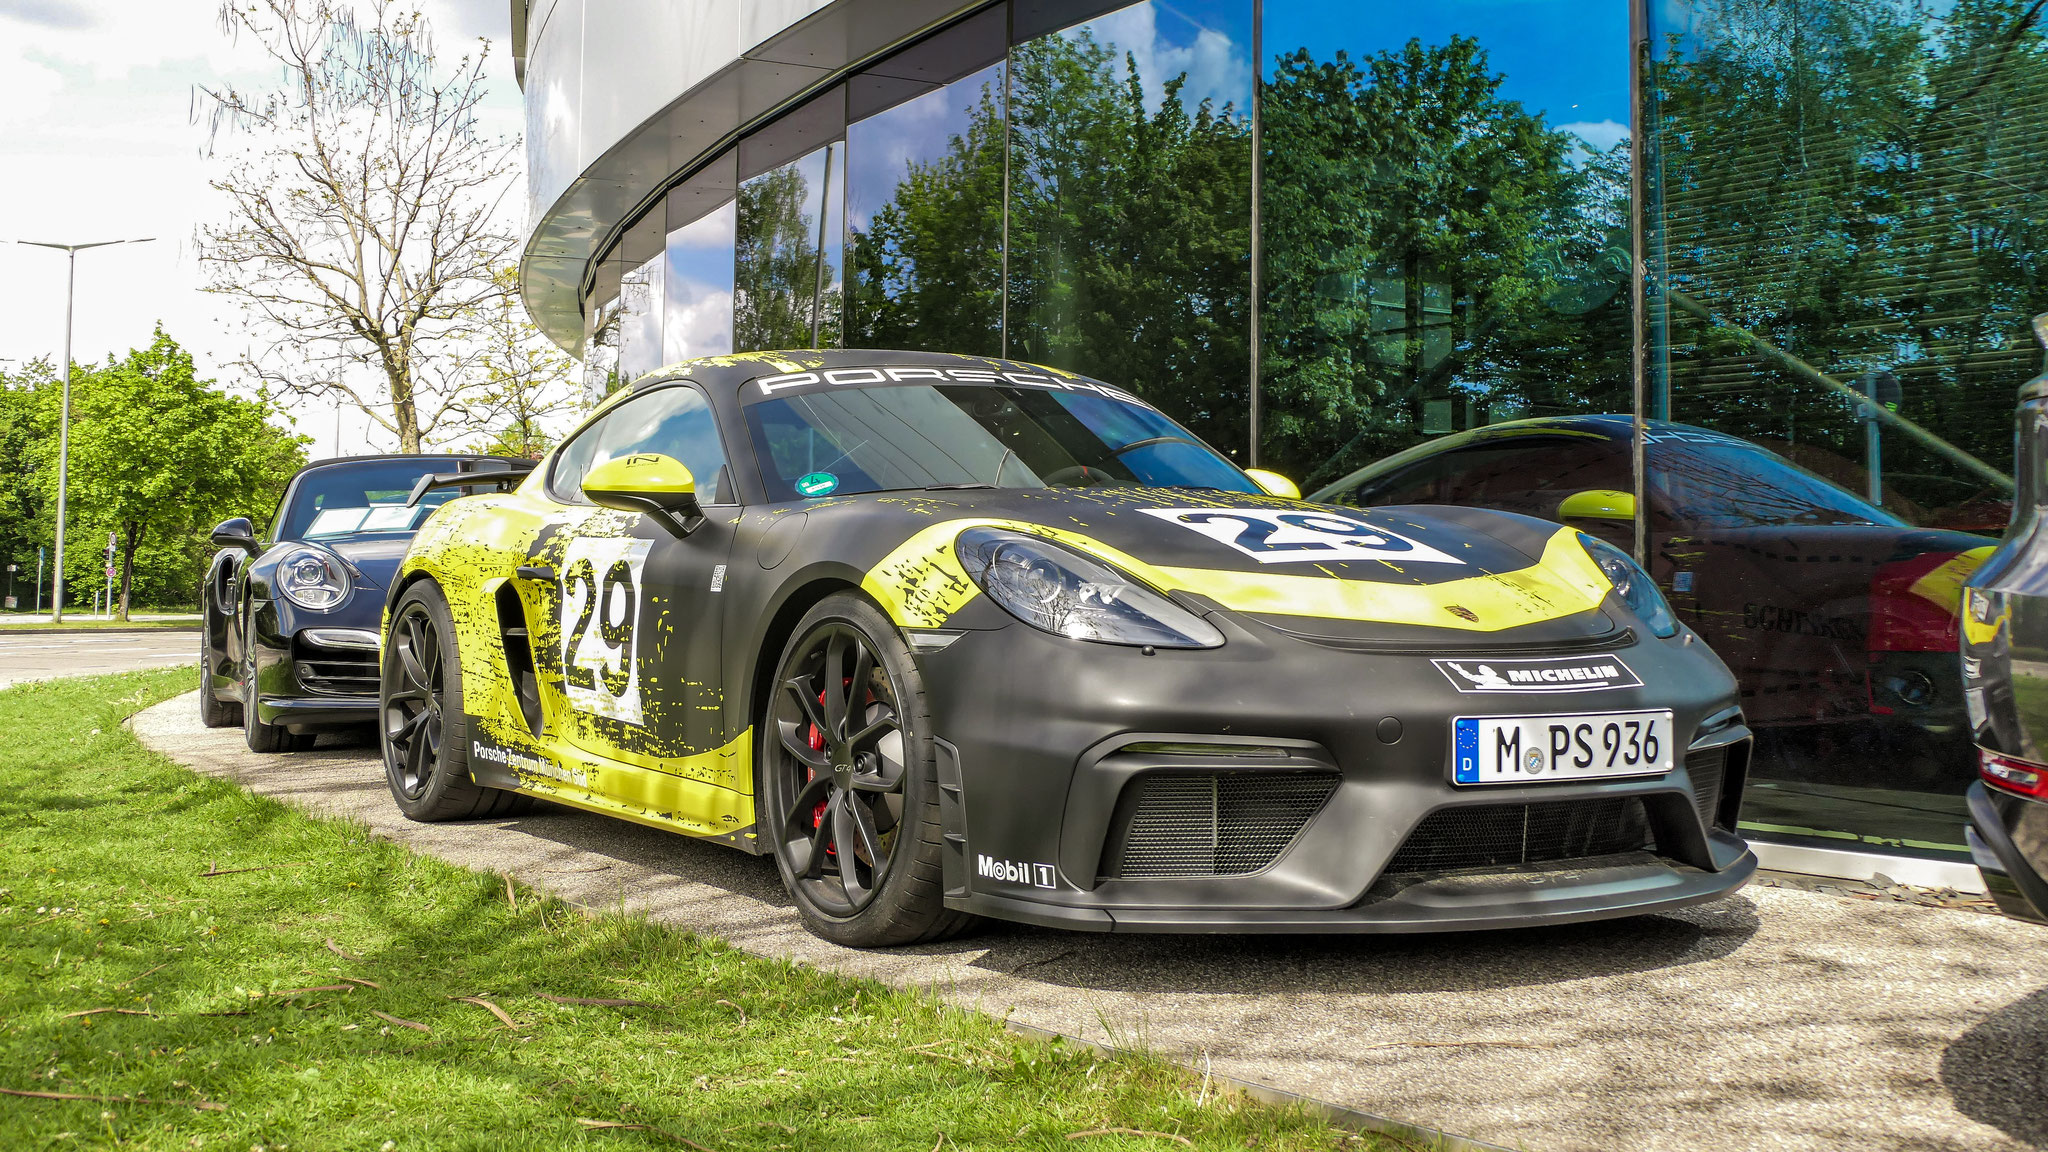 Porsche Cayman GT4 - M-PS-936